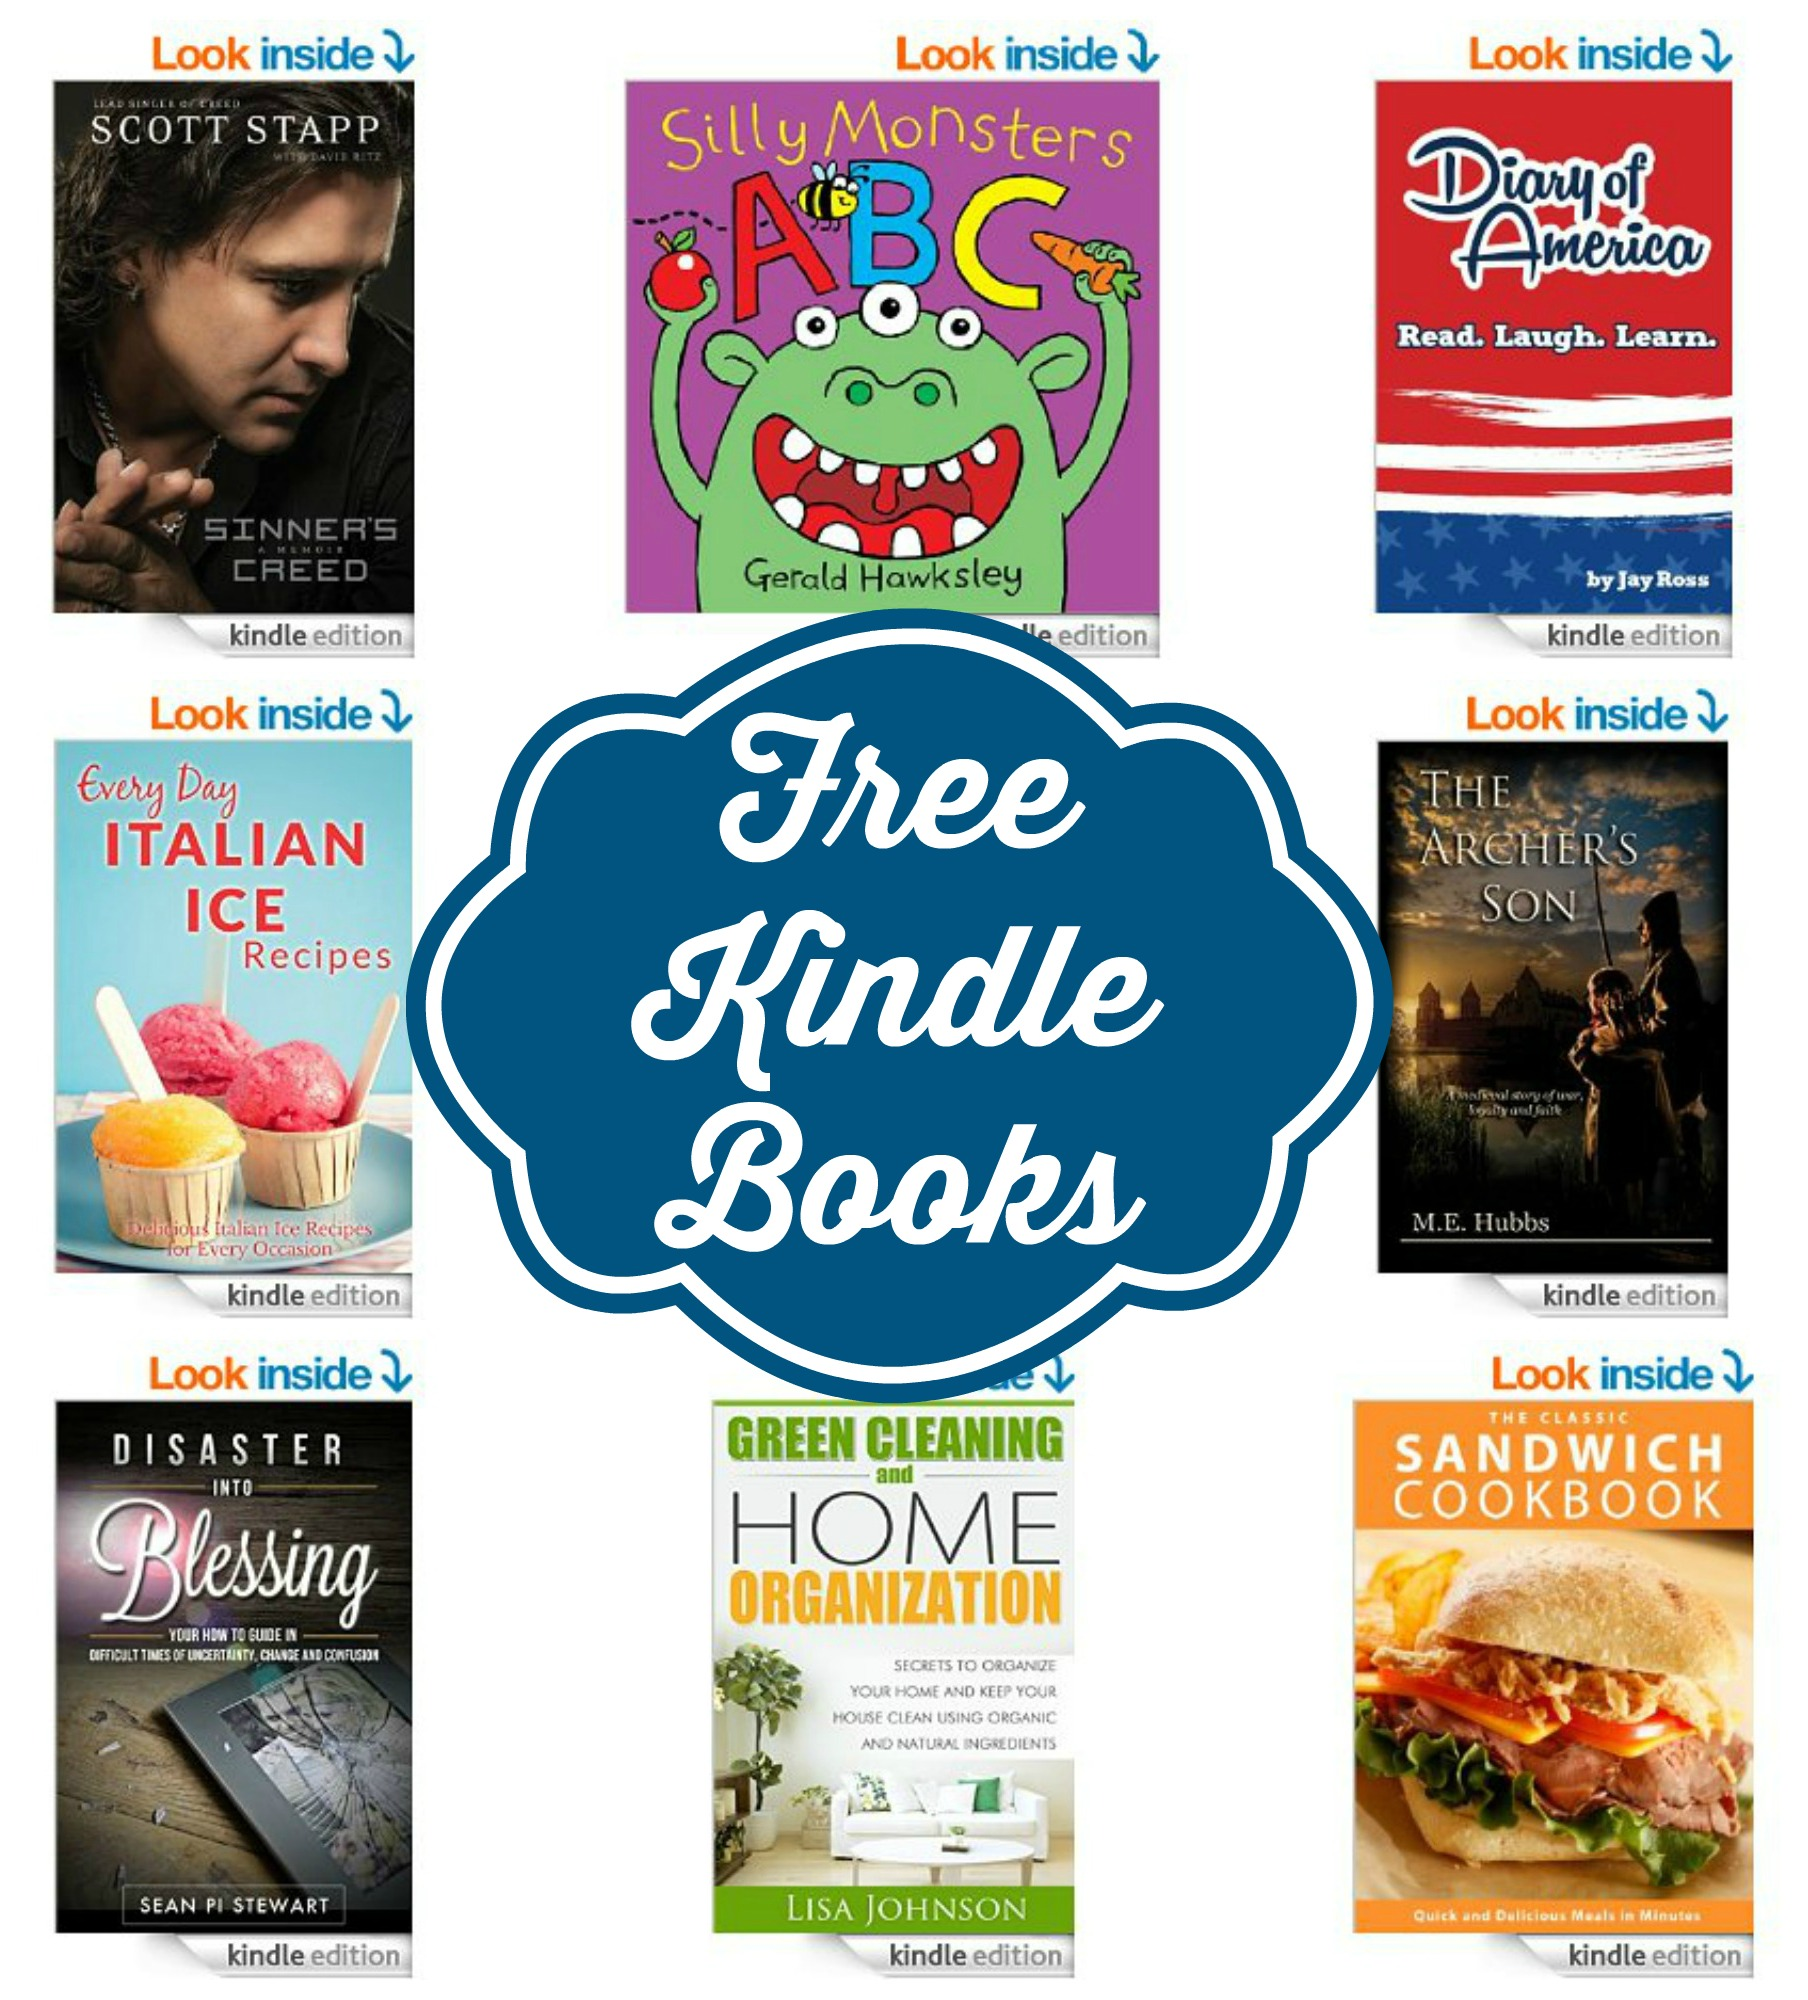 20 free kindle books the archer s son sinner s creed diary of